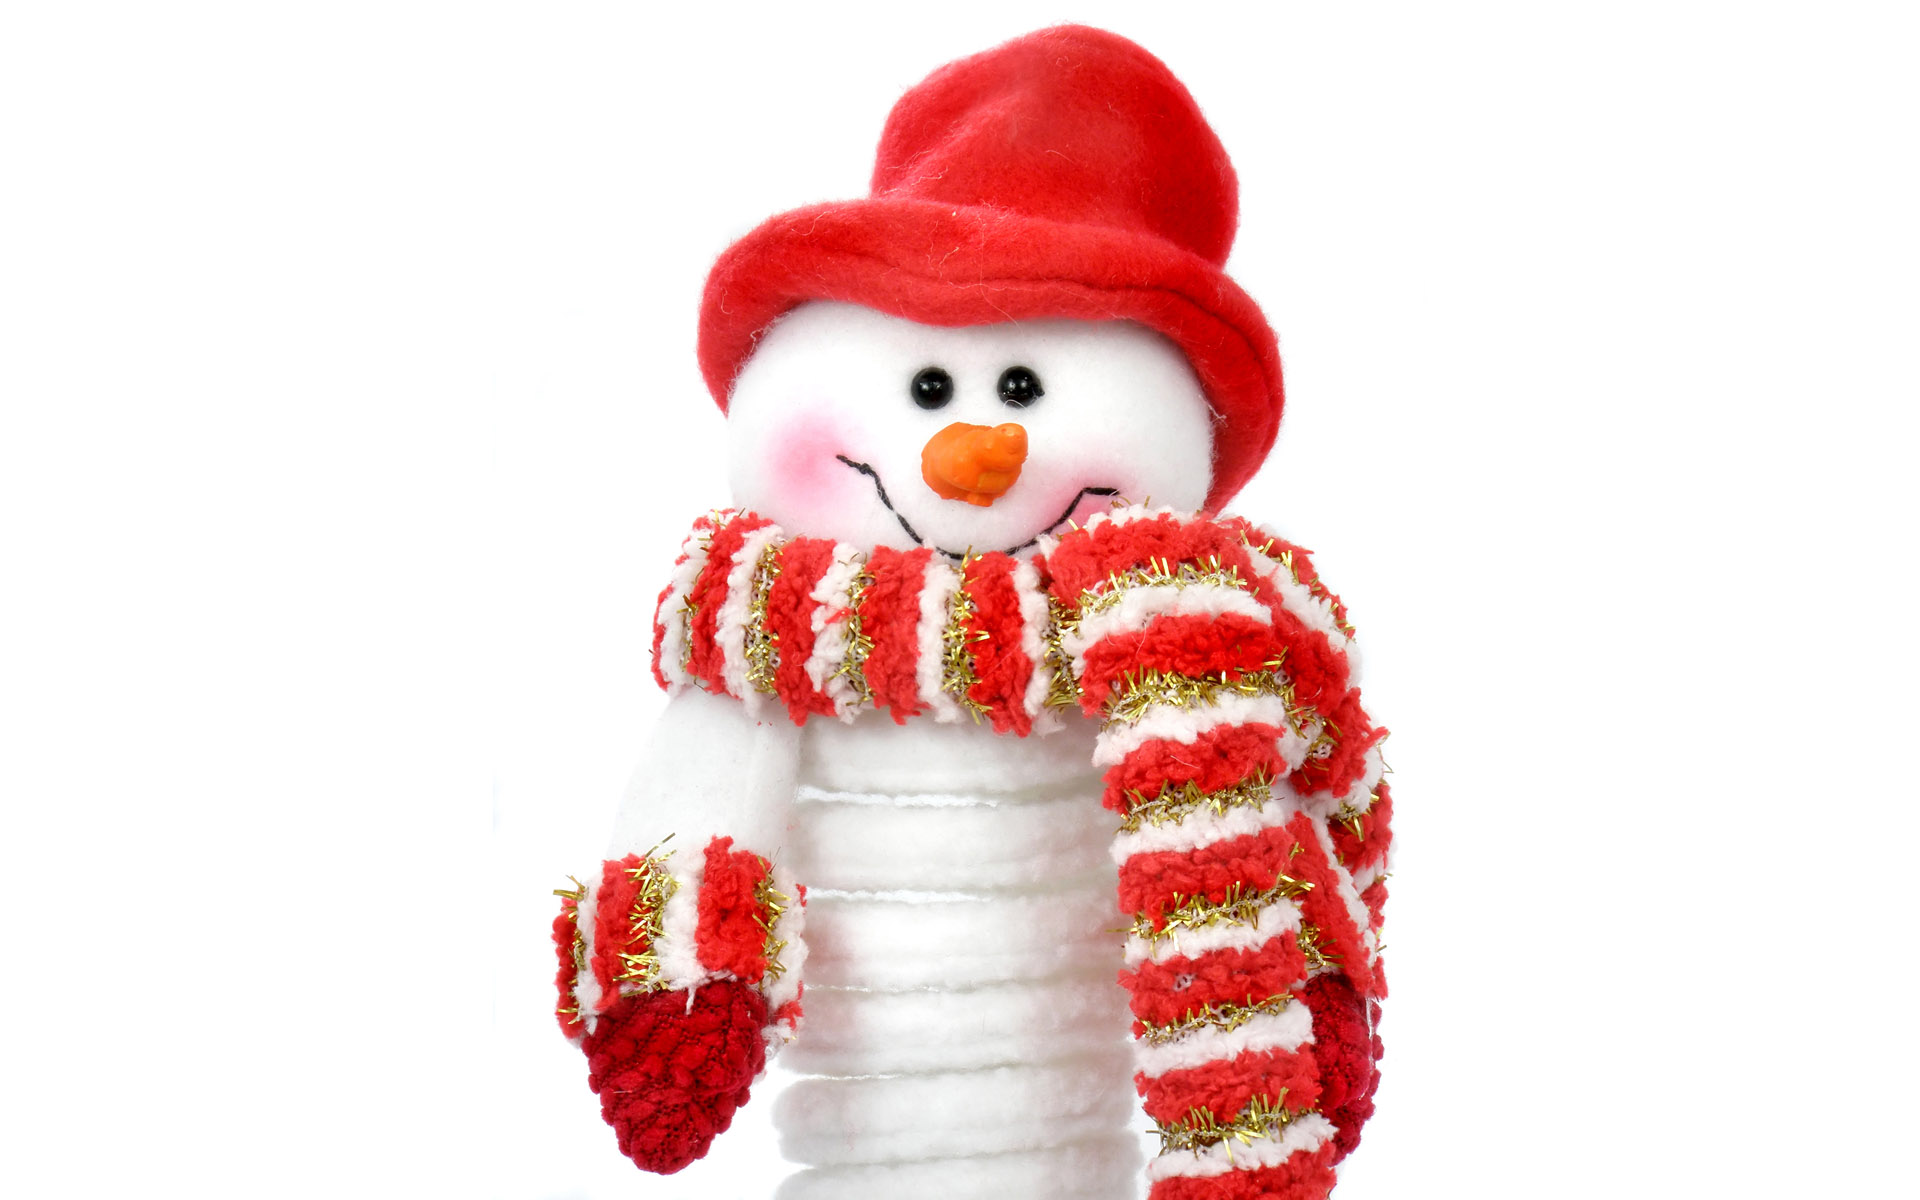 1920x1200 Snowman with red hat desktop PC and Mac wallpaper 1920x1200